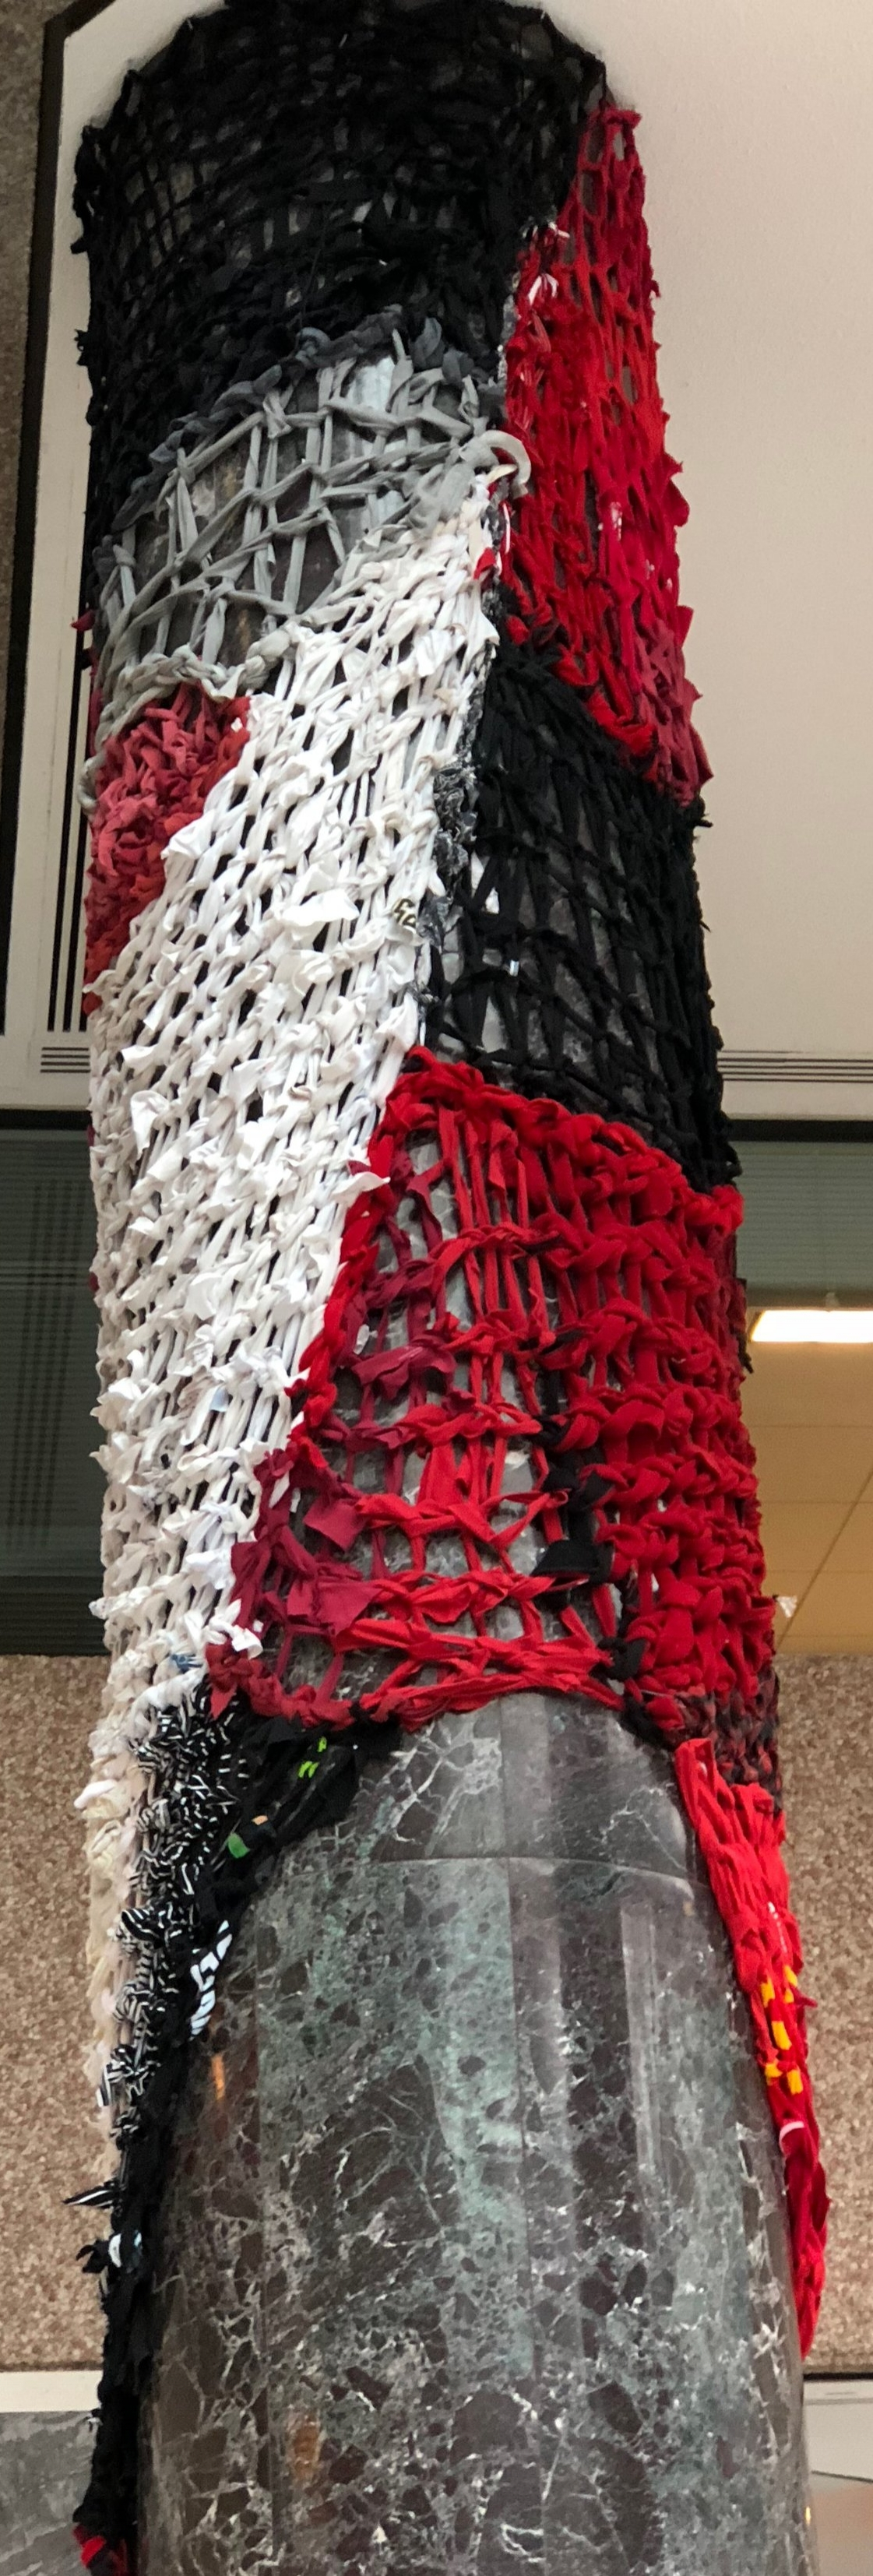 recycled textiles, paracord  19' height x 11' circumference  SOLD